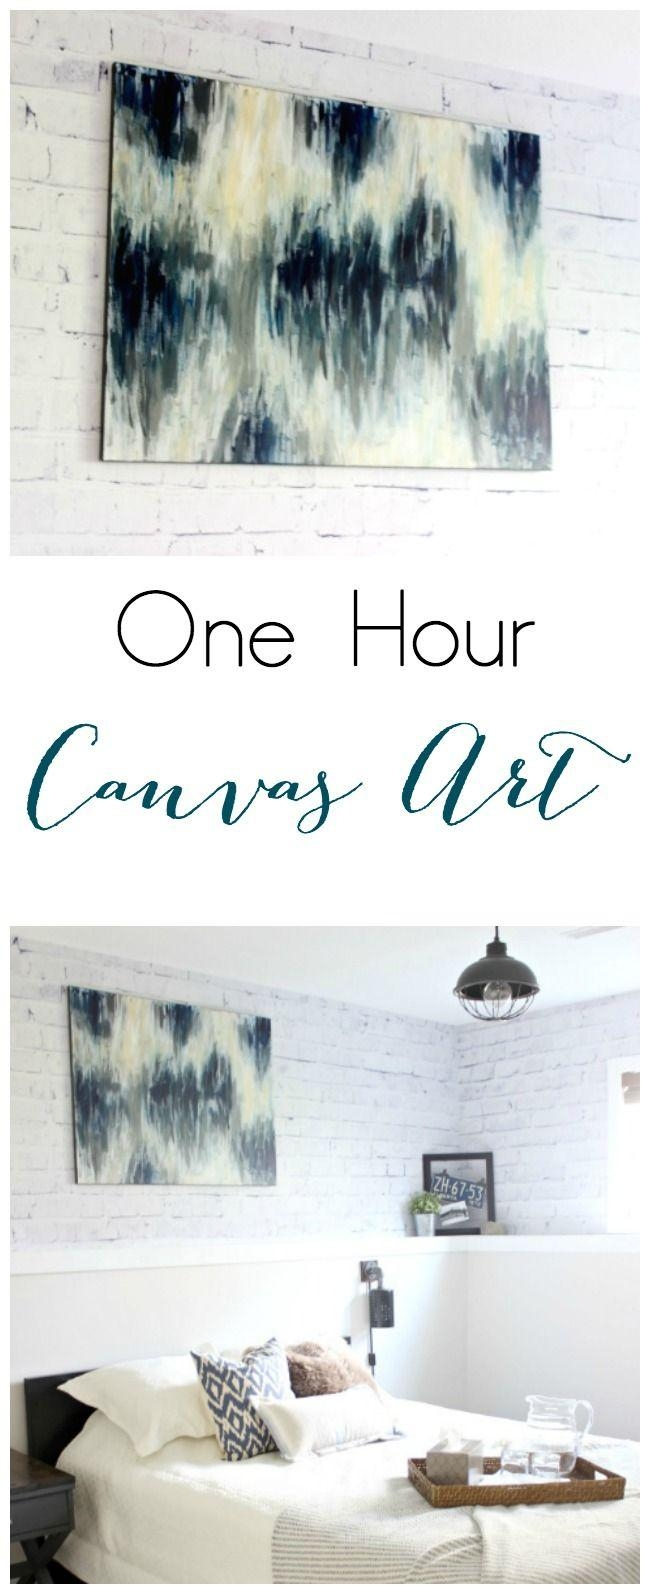 Best 25+ Diy Canvas Art Ideas On Pinterest | Diy Canvas, Diy Pertaining To Diy Pinterest Canvas Art (View 17 of 20)